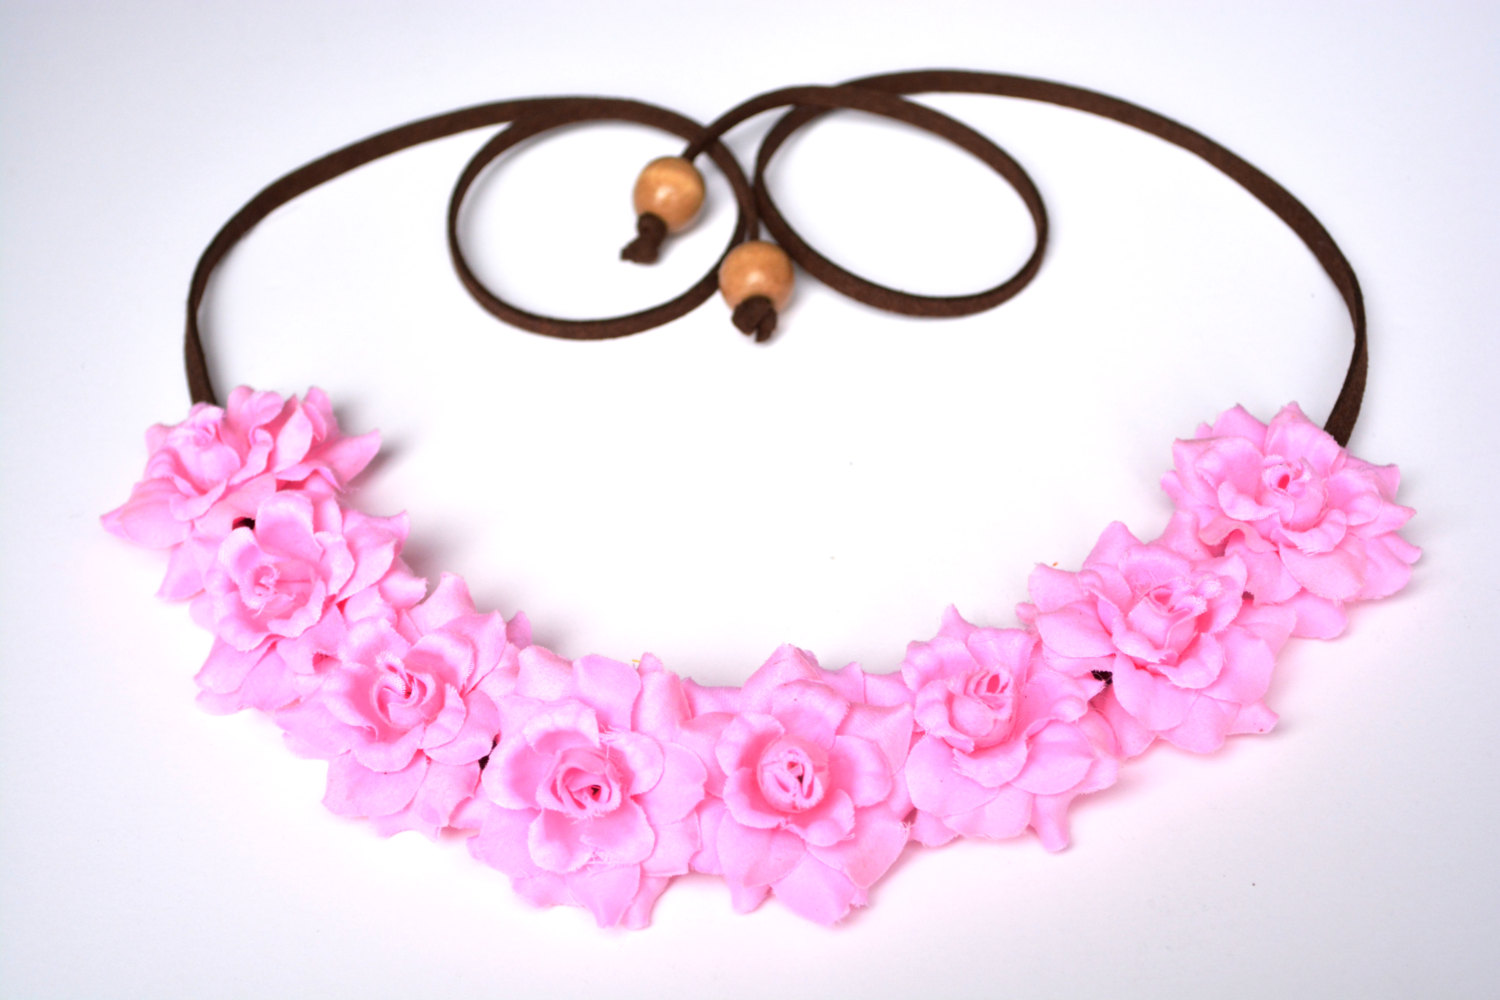 Pink rose flower crown pink flower halo floral headband festival headpiece pink rose hippie headwrap rose crown festival flower halo